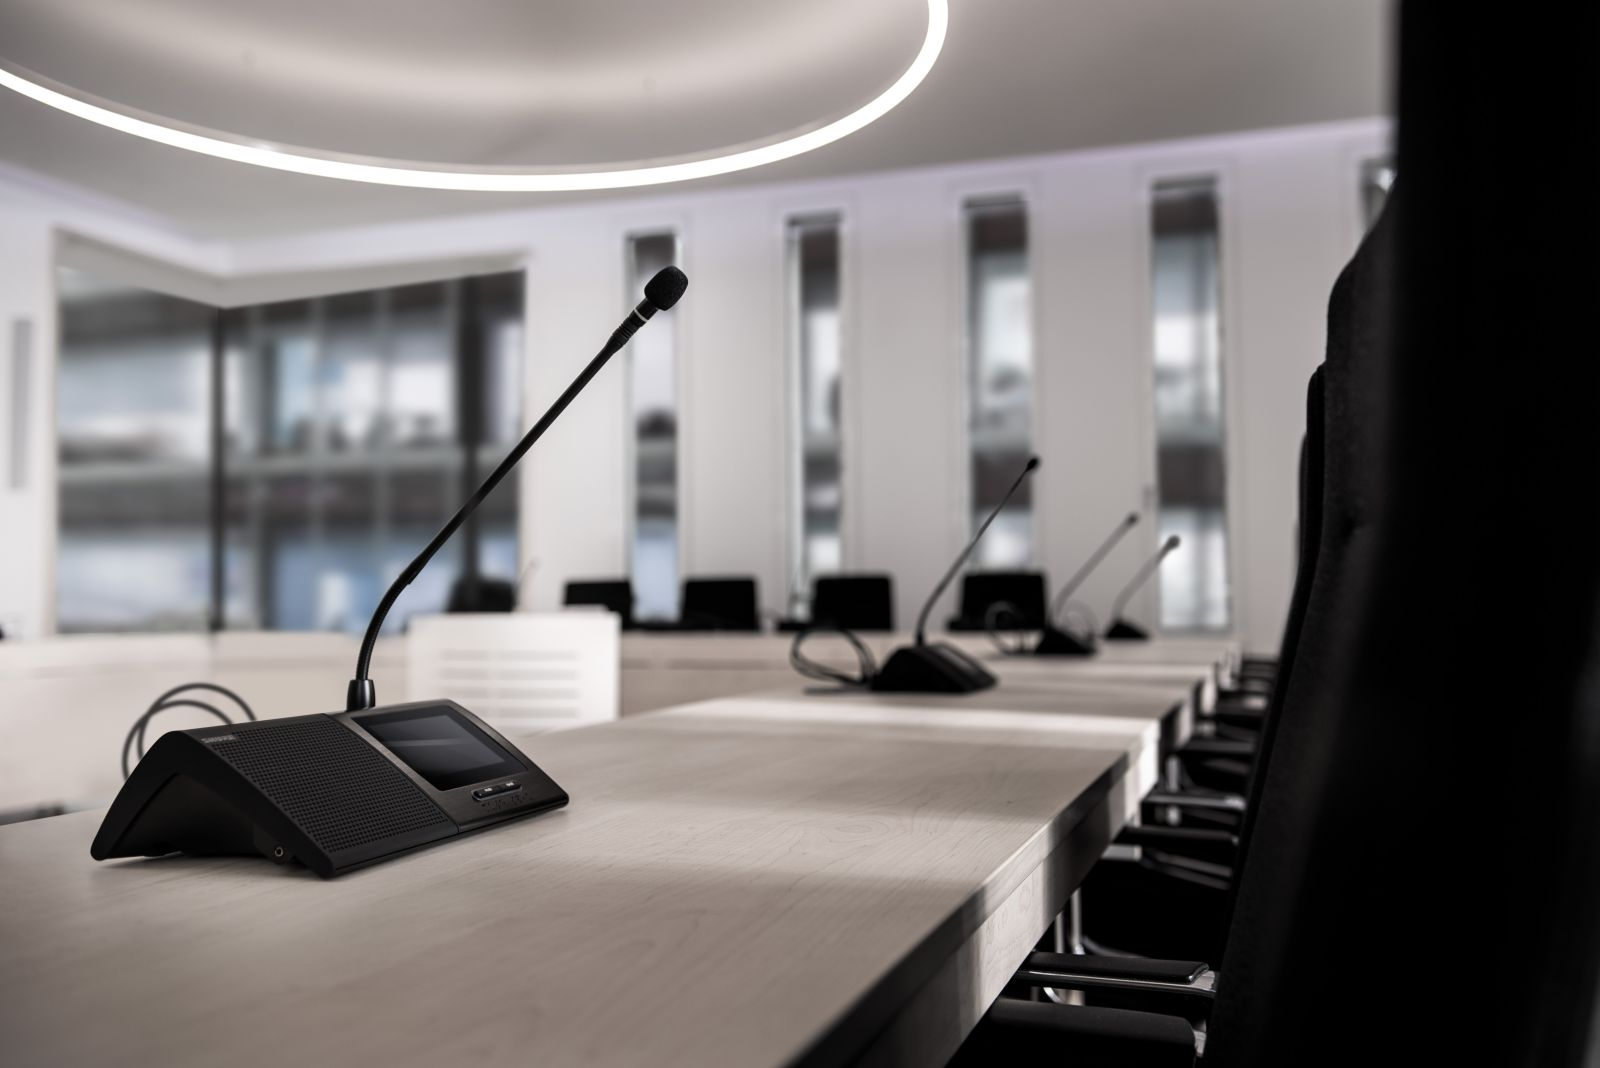 Shure MXC conferencing system in Council Space